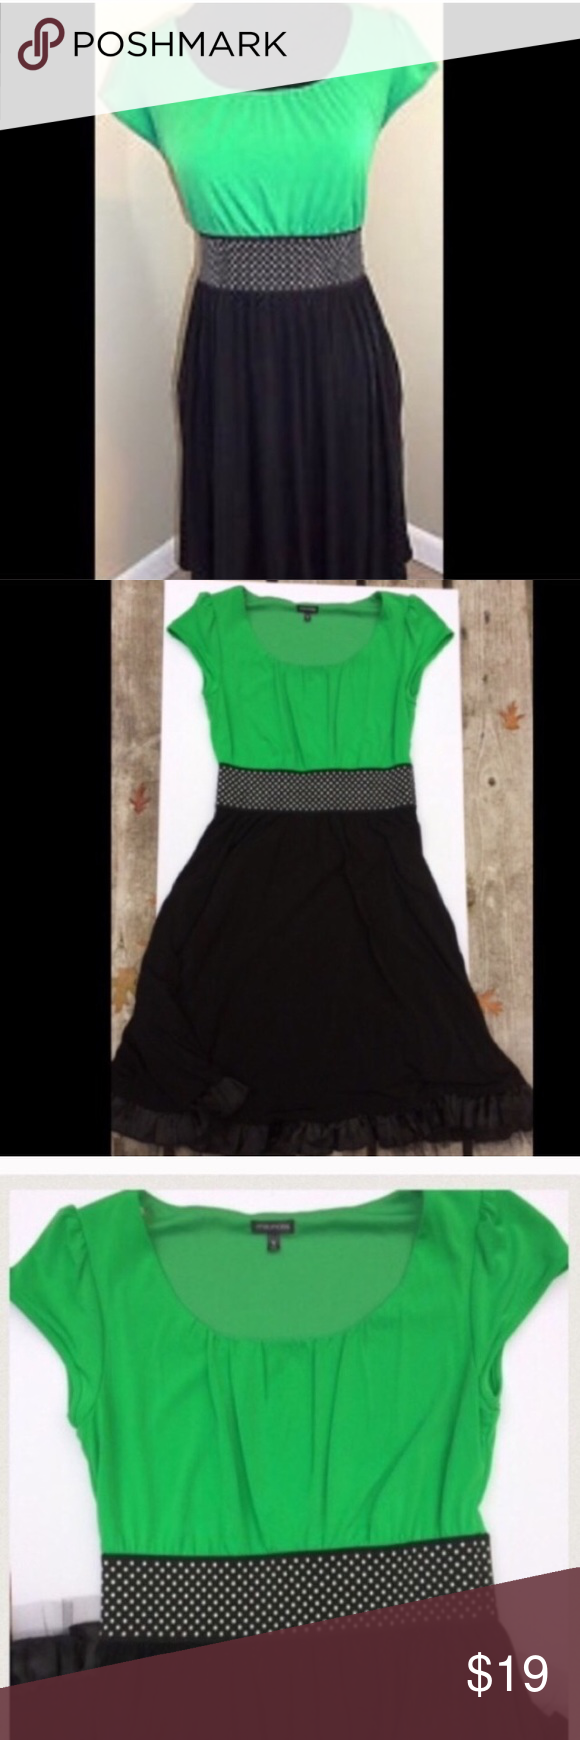 Maurice's Green and Black Polkadot Dress Cute polka dot waist band pulls together this  black and Green Party dress . Great condition, only worn once! Maurices Dresses Midi